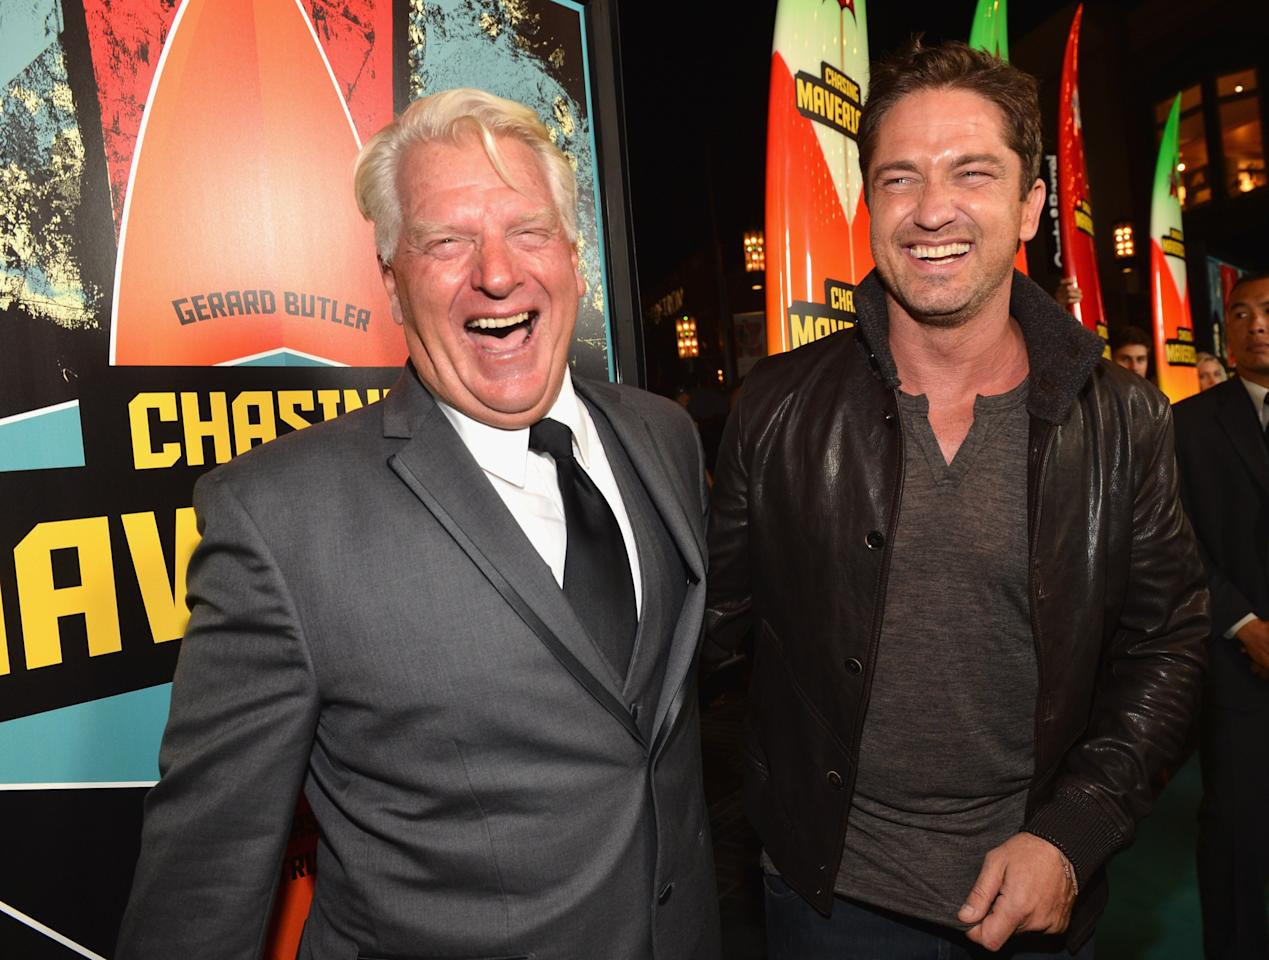 """LOS ANGELES, CA - OCTOBER 18:  Surfer Frosty Hesson and actor Gerard Butler arrive to the premiere of 20th Century Fox's """"Chasing Mavericks"""" on October 18, 2012 in Los Angeles, California.  (Photo by Alberto E. Rodriguez/Getty Images)"""